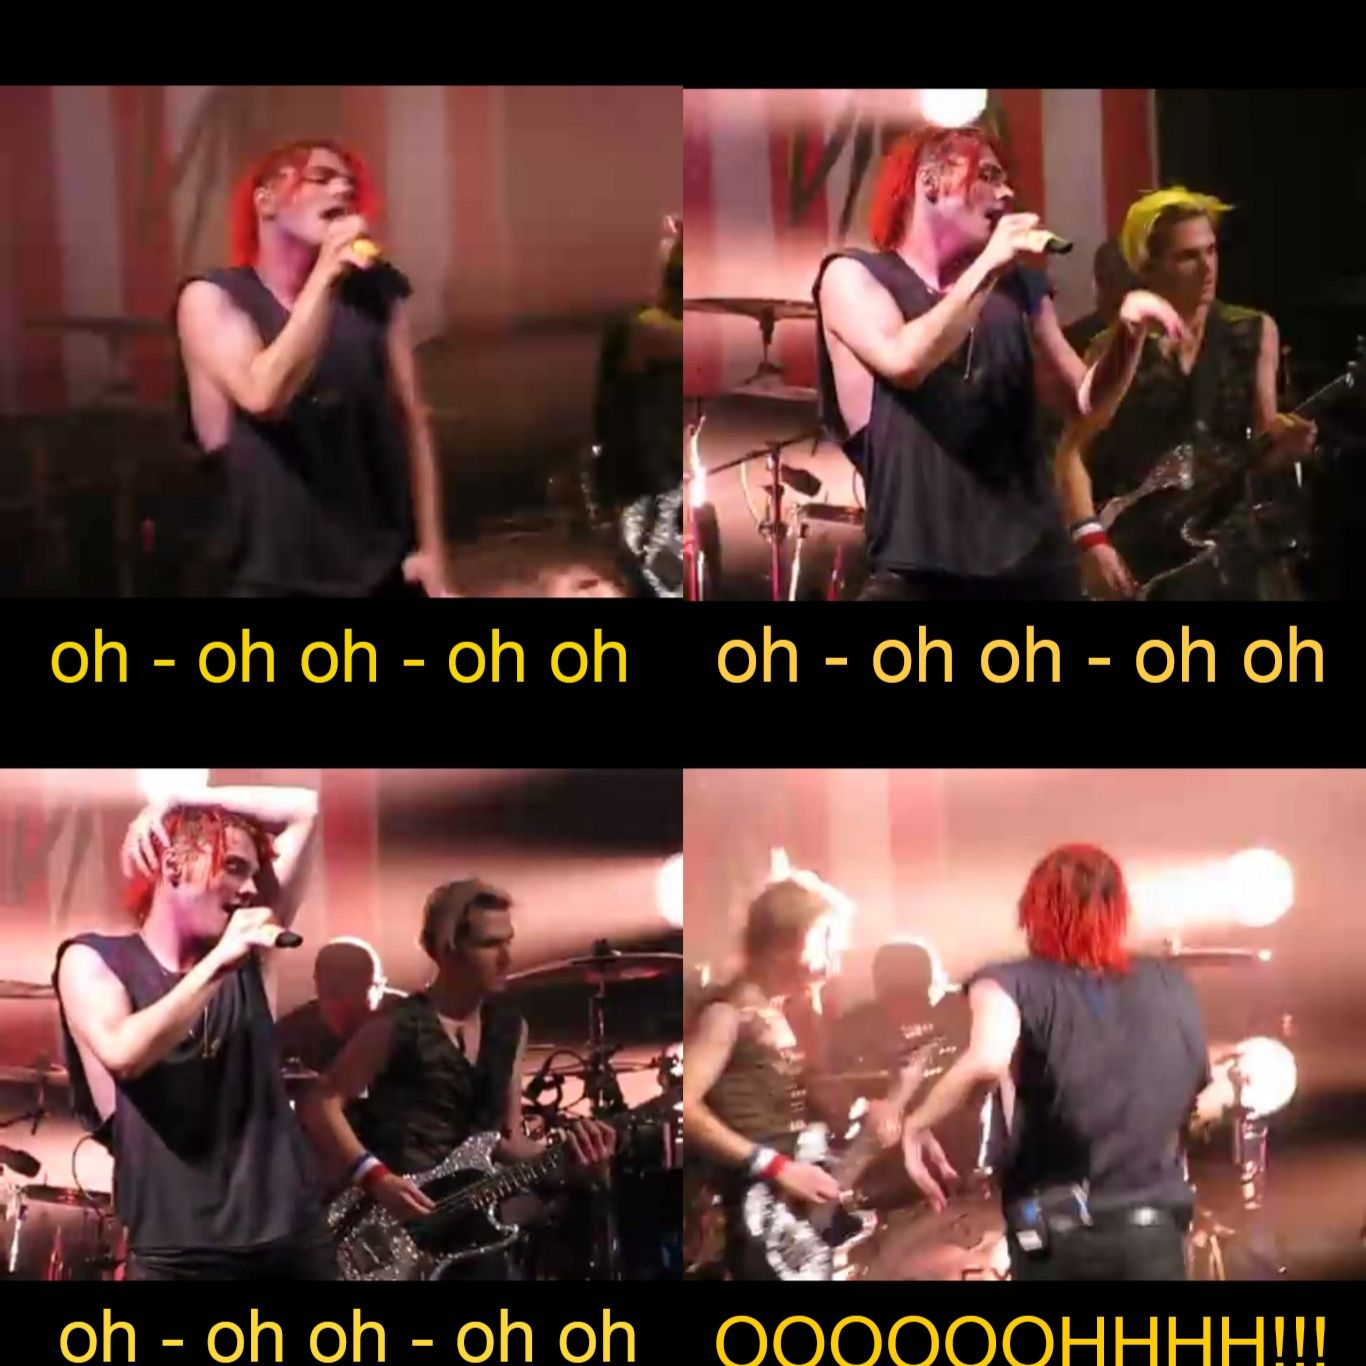 Destroya XD Gee is our sassy queen haha